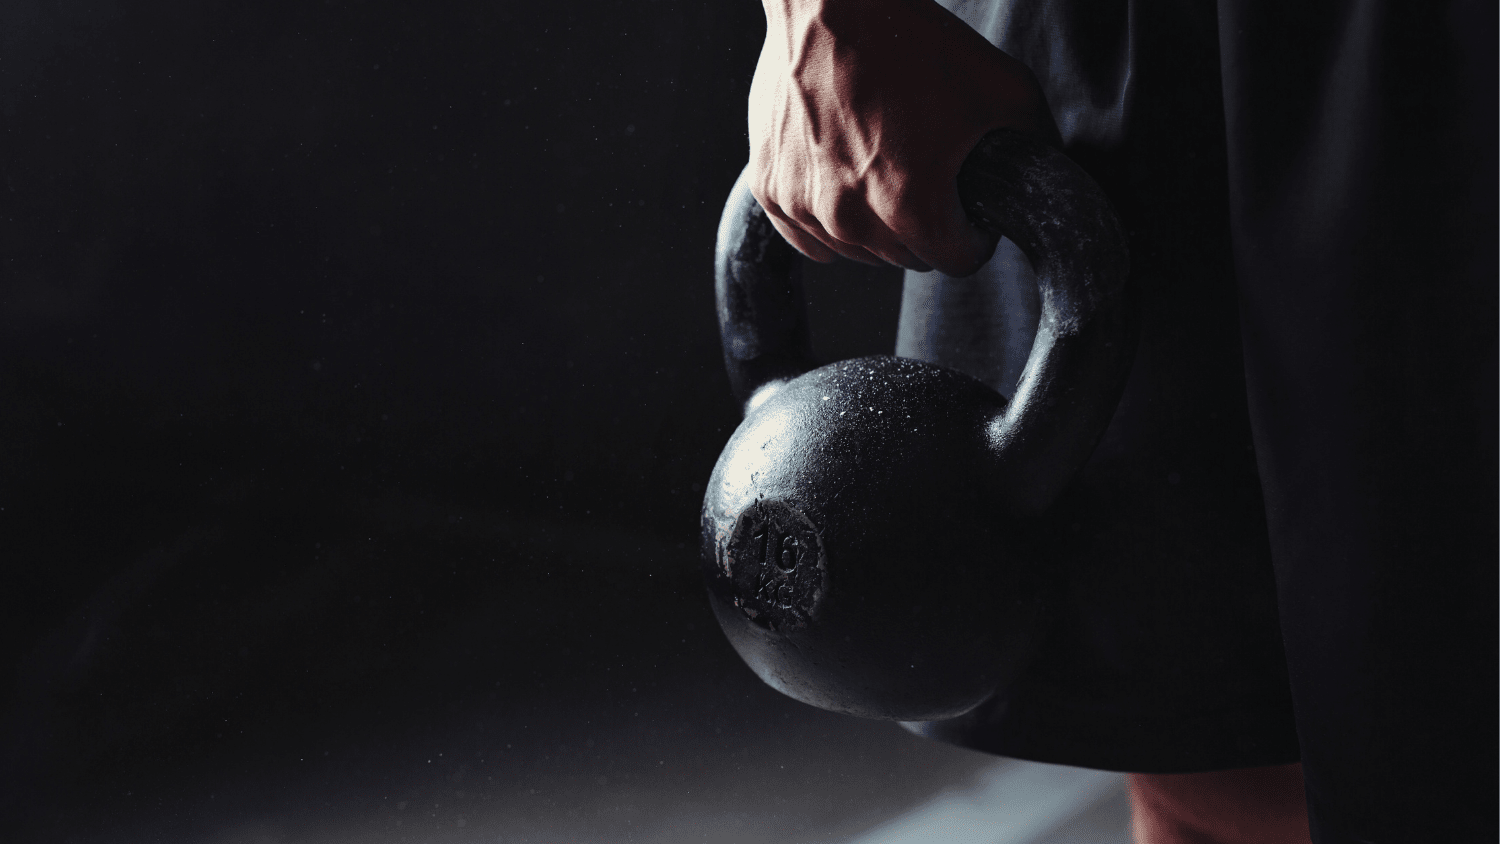 How to Develop Your Grip Strength